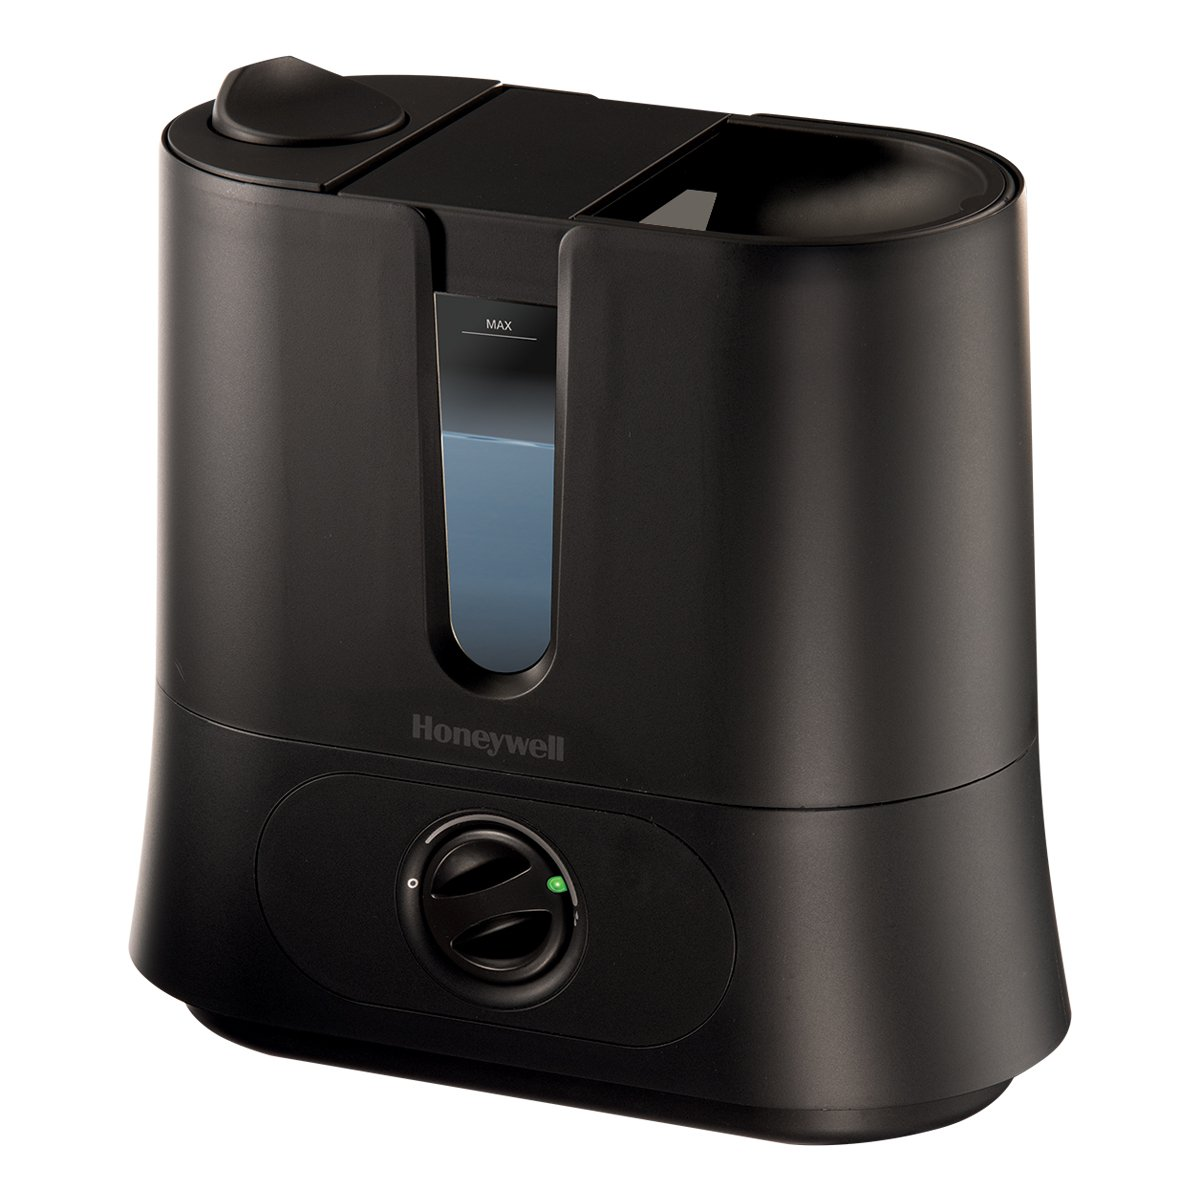 Honeywell Top Fill Cool Mist Humidifier Black Ultra Wiring Schematic Diagram Together With Ultrasonic Fogger Circuit Quiet Auto Shut Off Variable Settings Removeable Tank Rotating Nozzle For